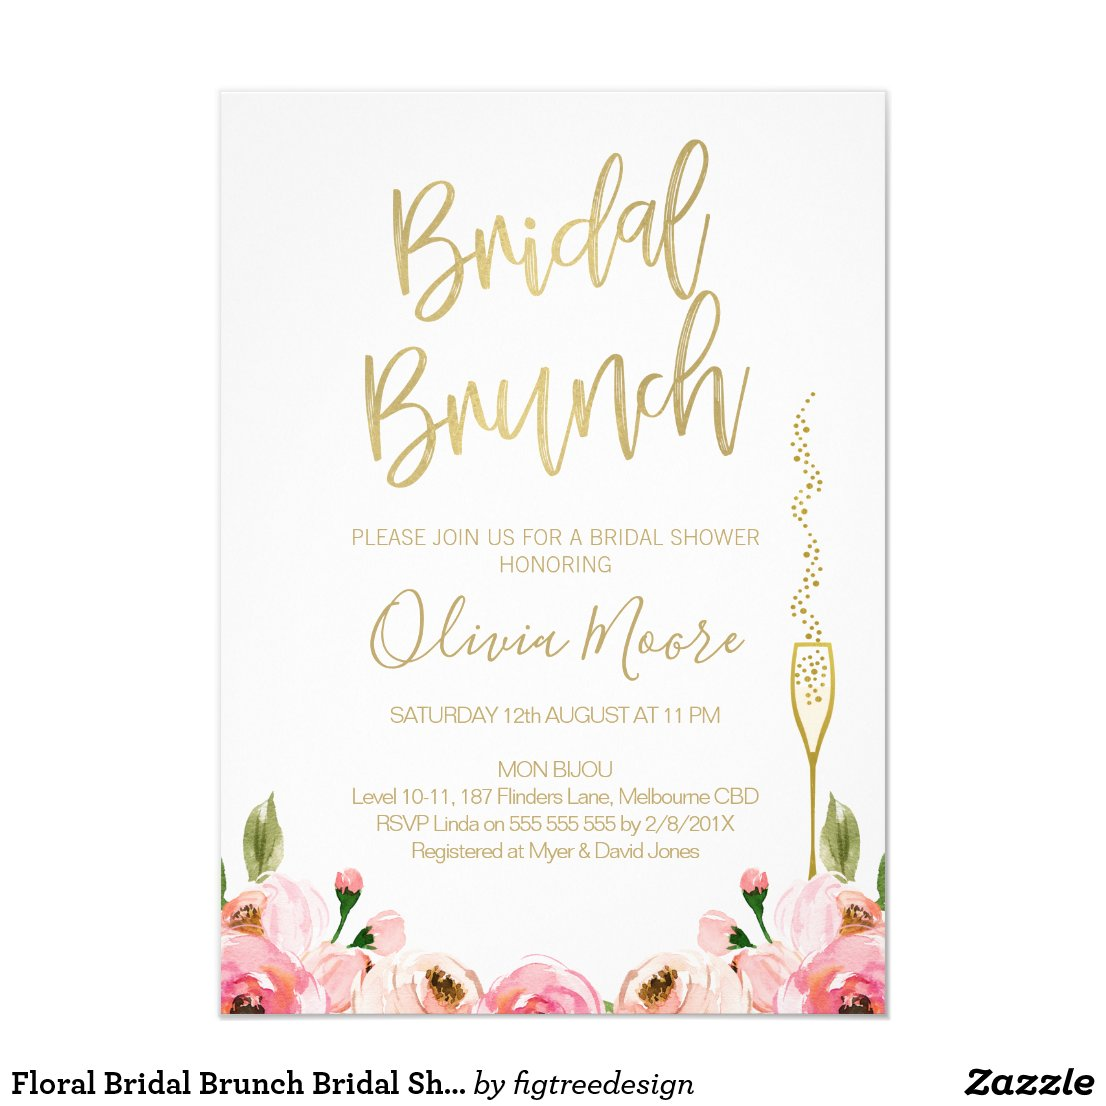 Floral Bridal Brunch Bridal Shower Invitation